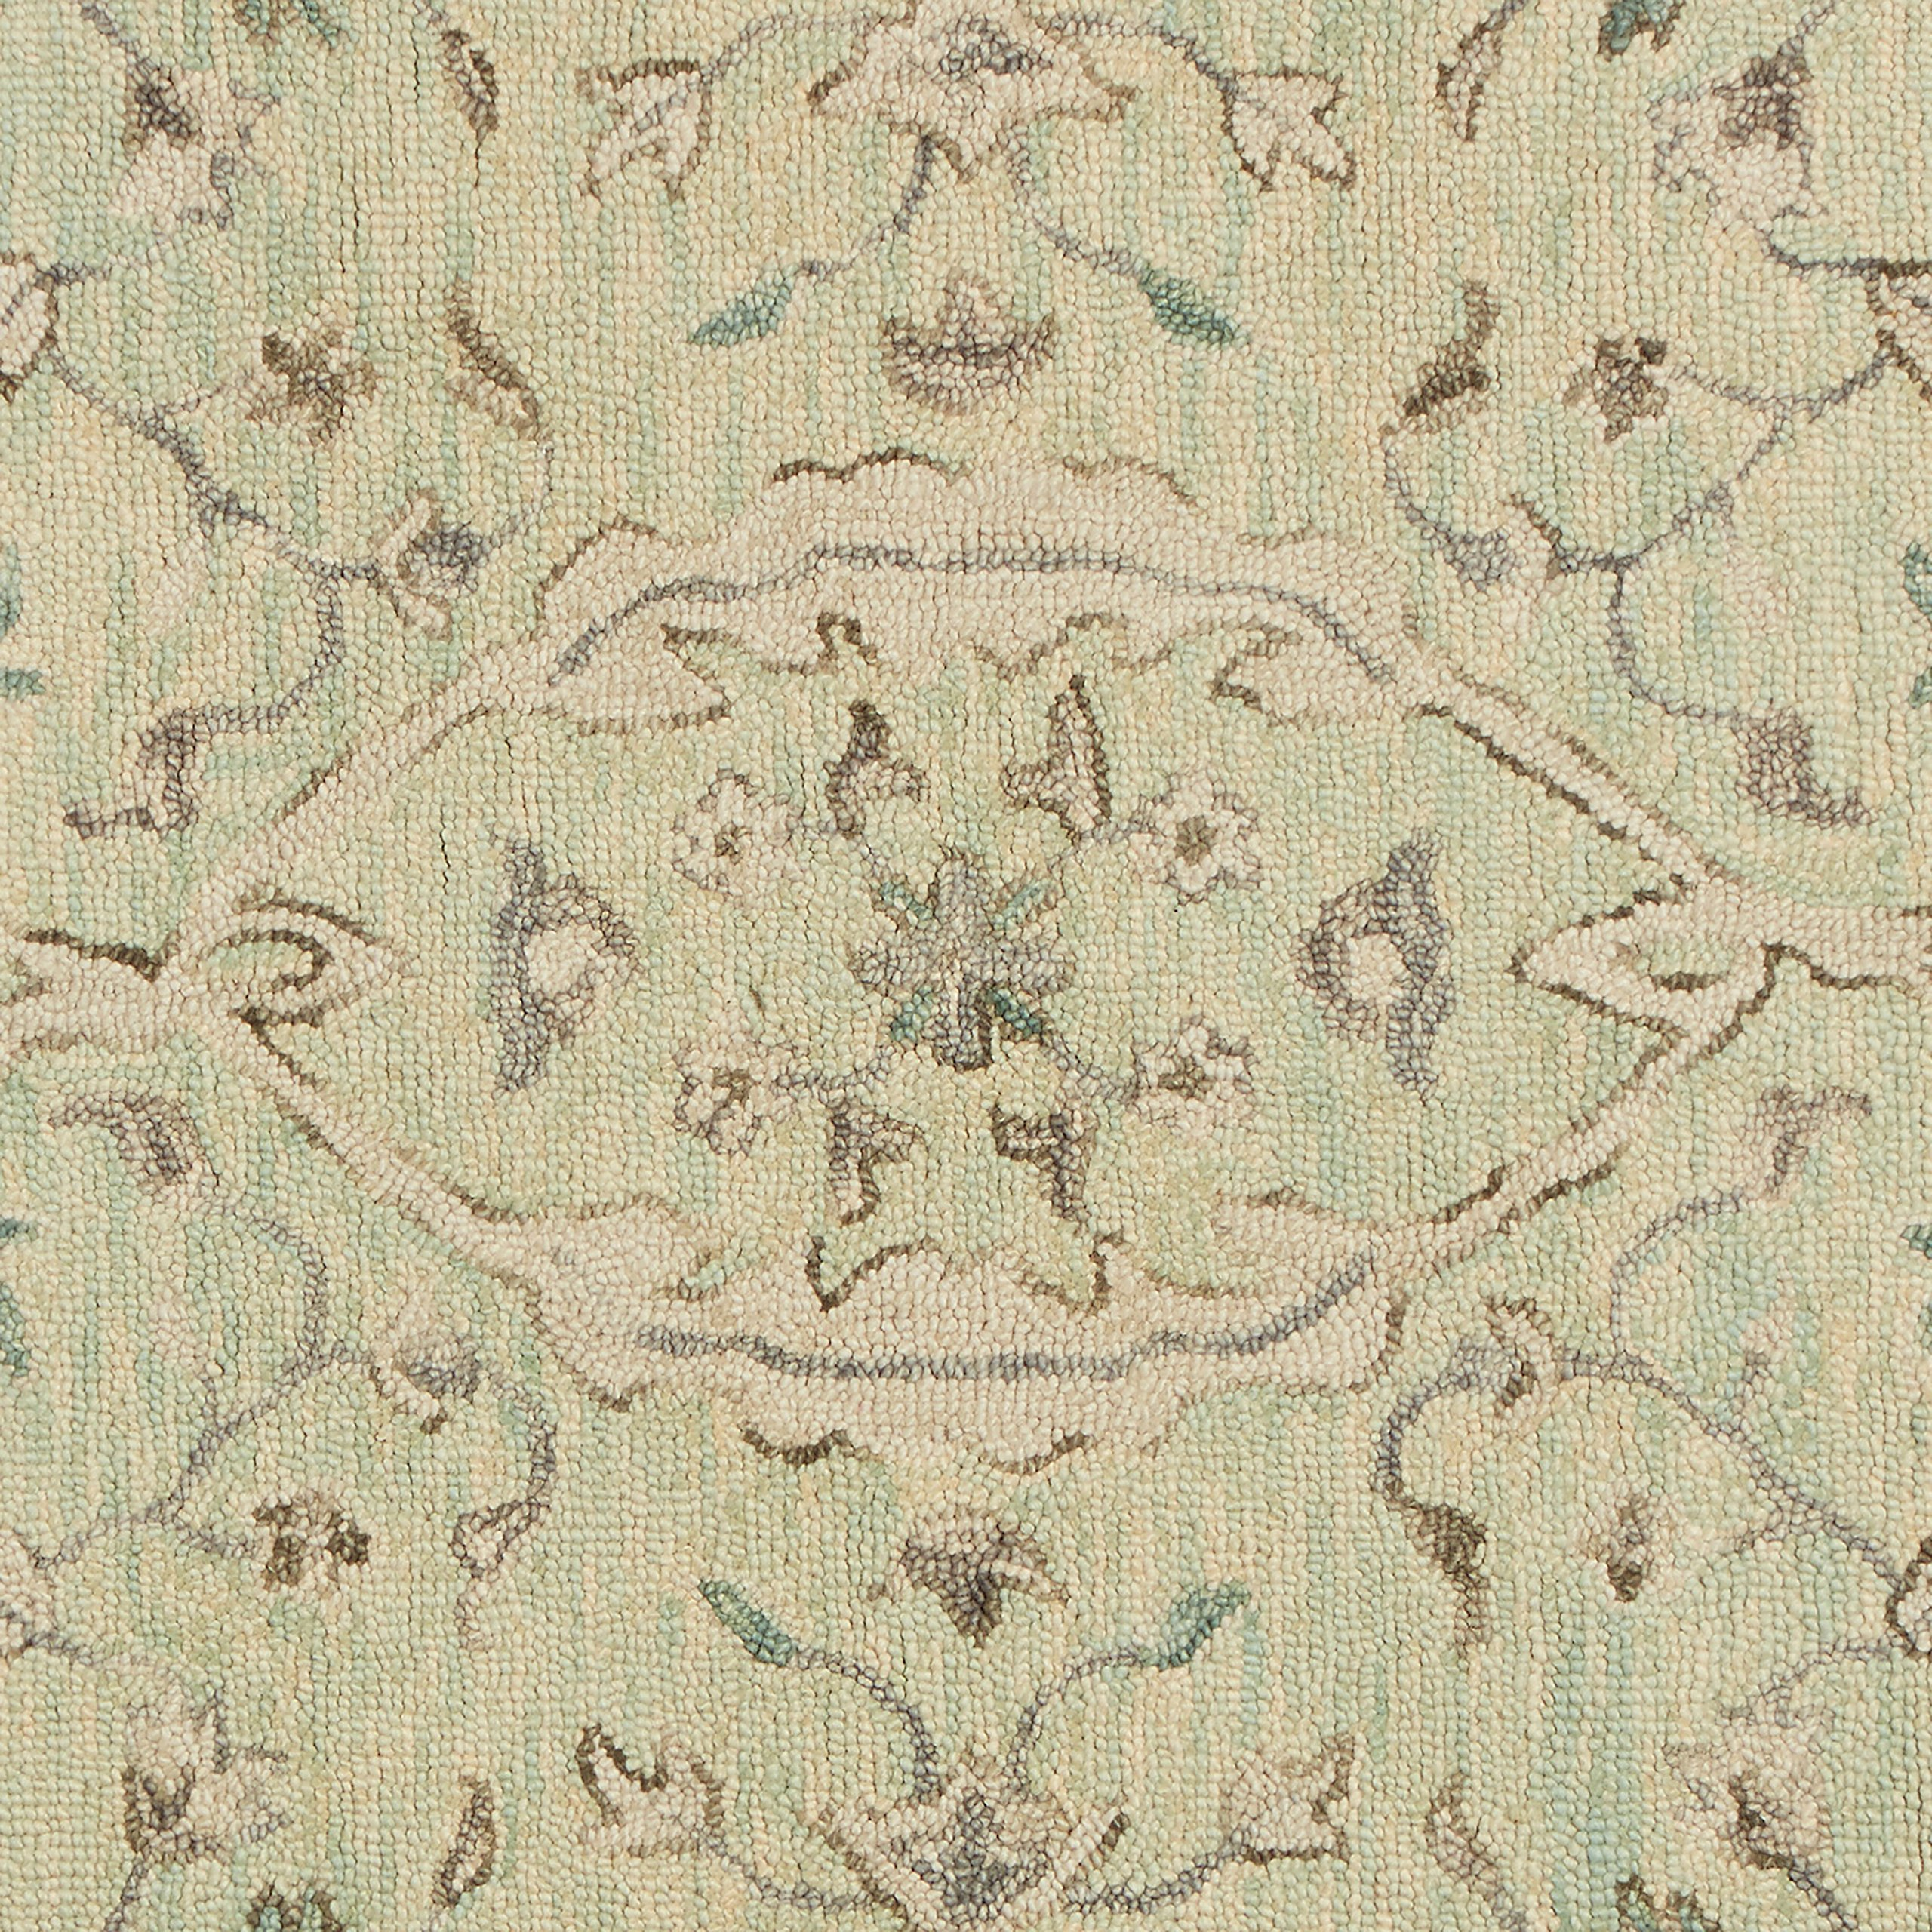 Stone & Beam Serene Transitional Wool Area Rug, 8' x 10', Multi by Stone & Beam (Image #6)